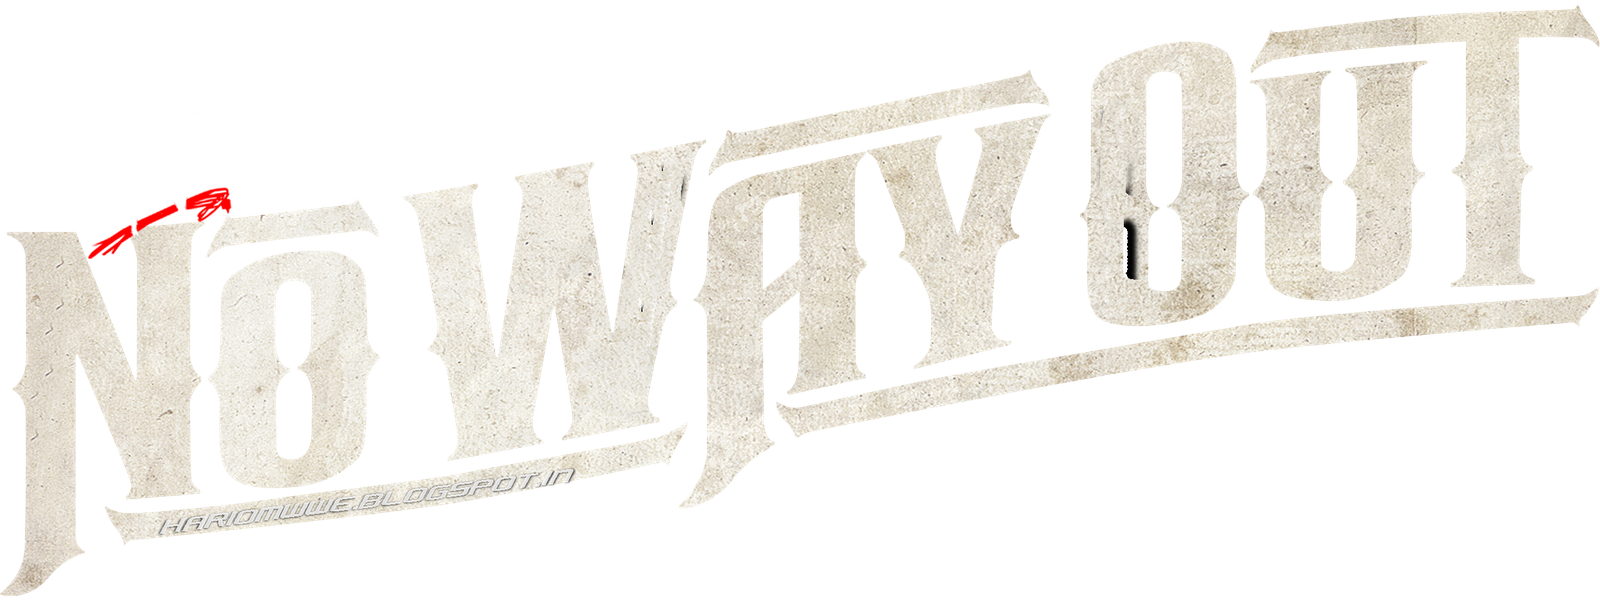 No way out logo png. Hariomwwe blogspot com official